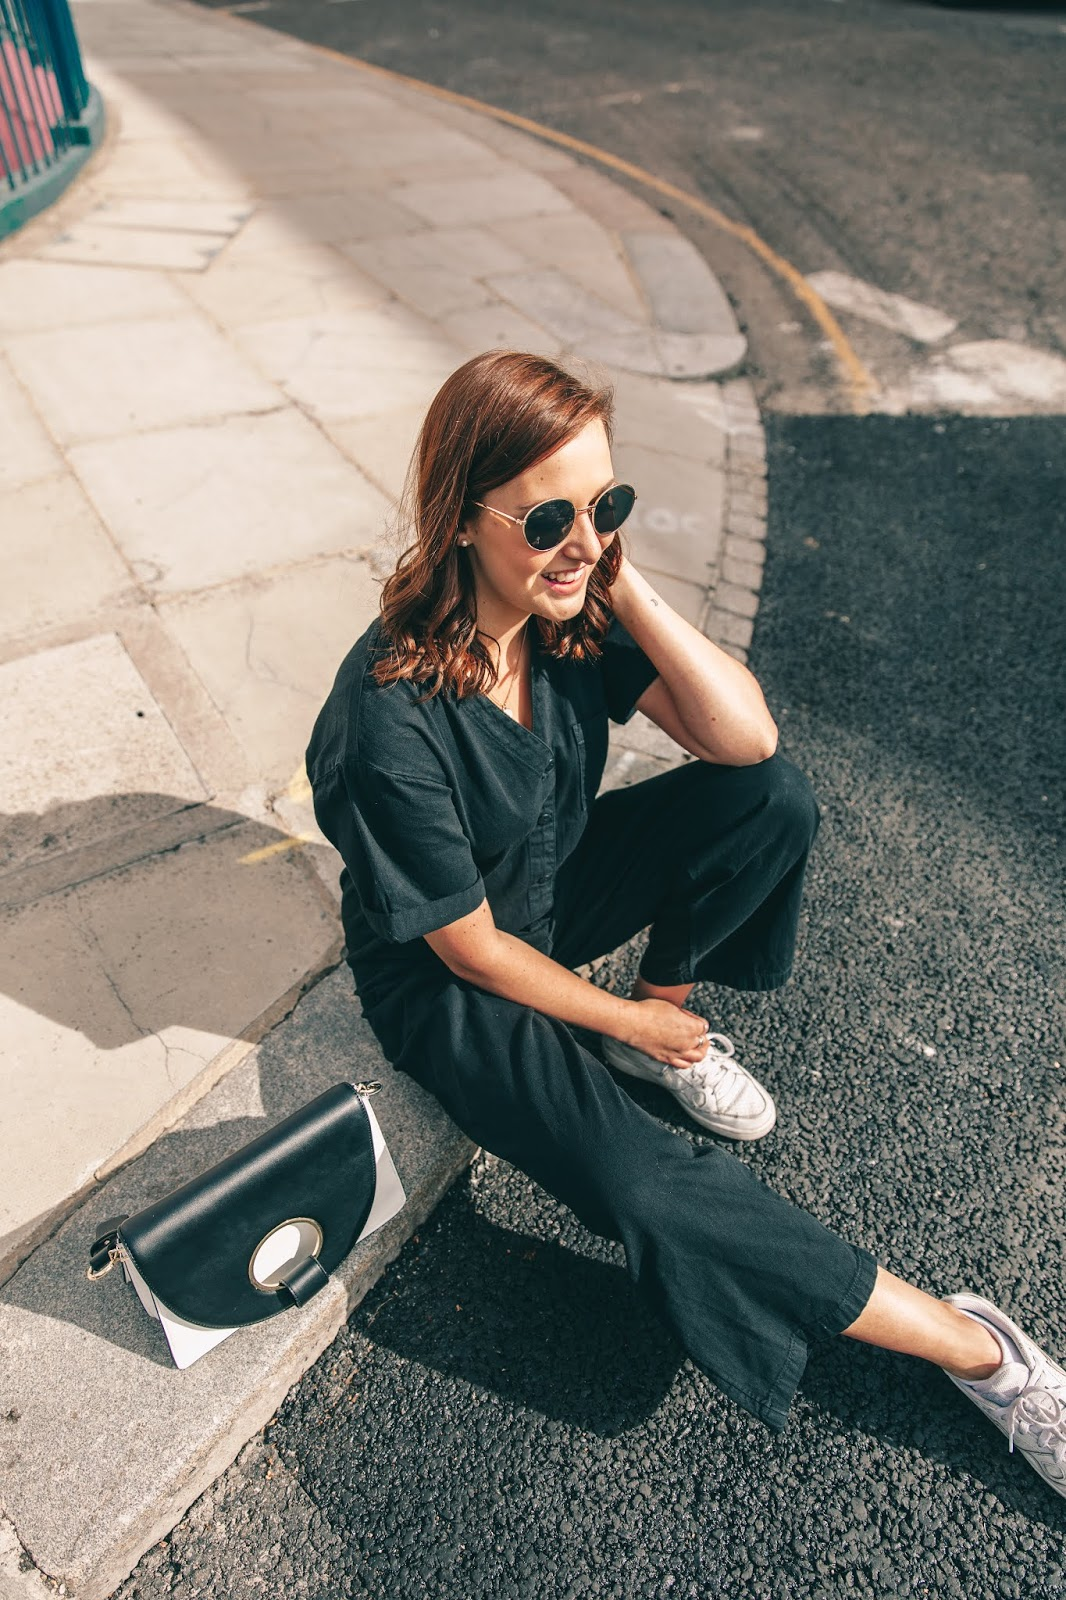 Monki Jumpsuit London Pink House OOTD Fashion Blog - My Month Long Shopping Ban - The Results // Lauren Rose Style Blogger London